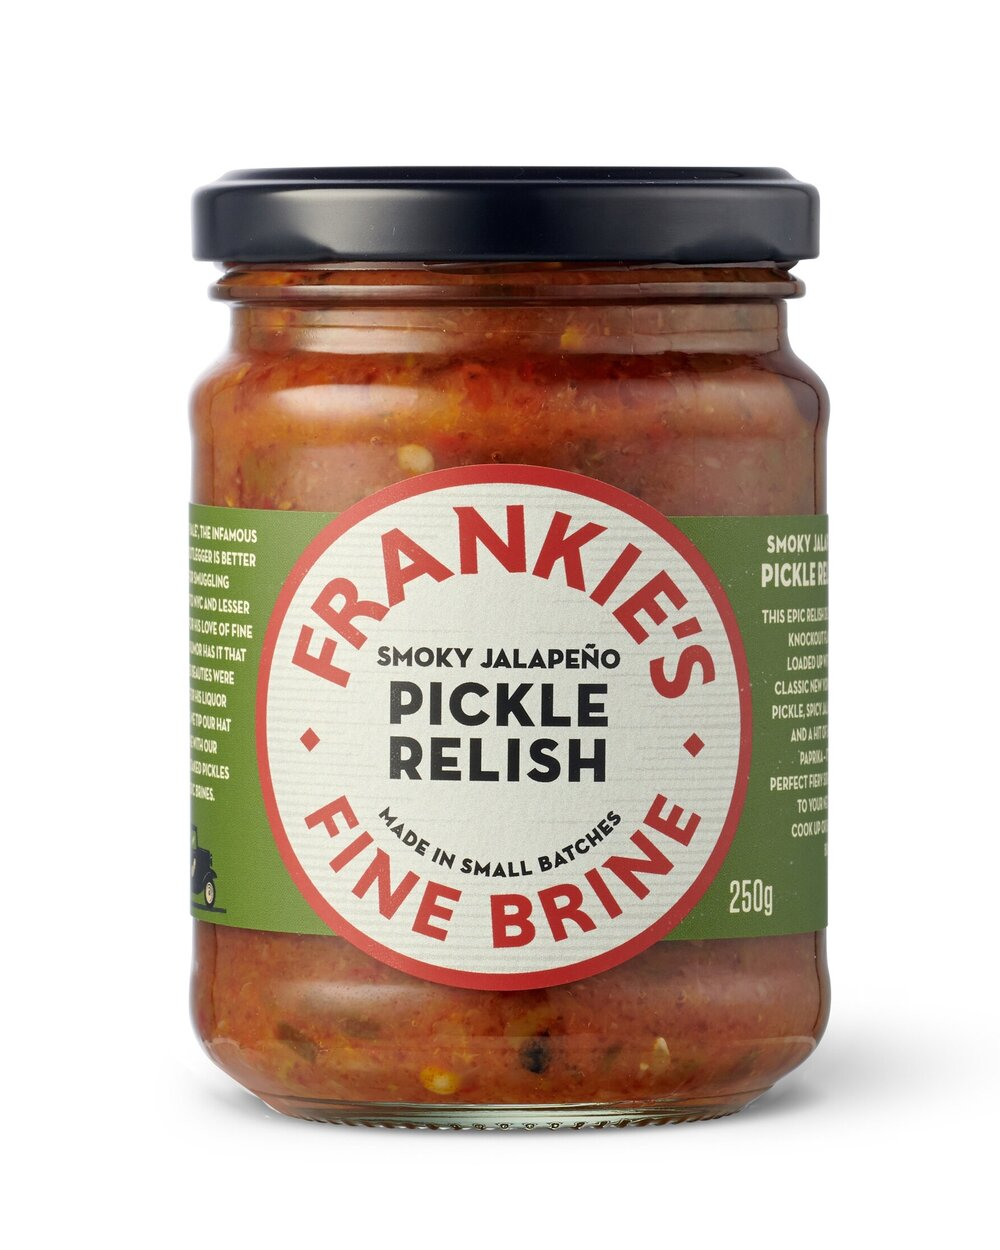 Frankies Fine Brine Smoky Jalapeno Pickle Relish 250g